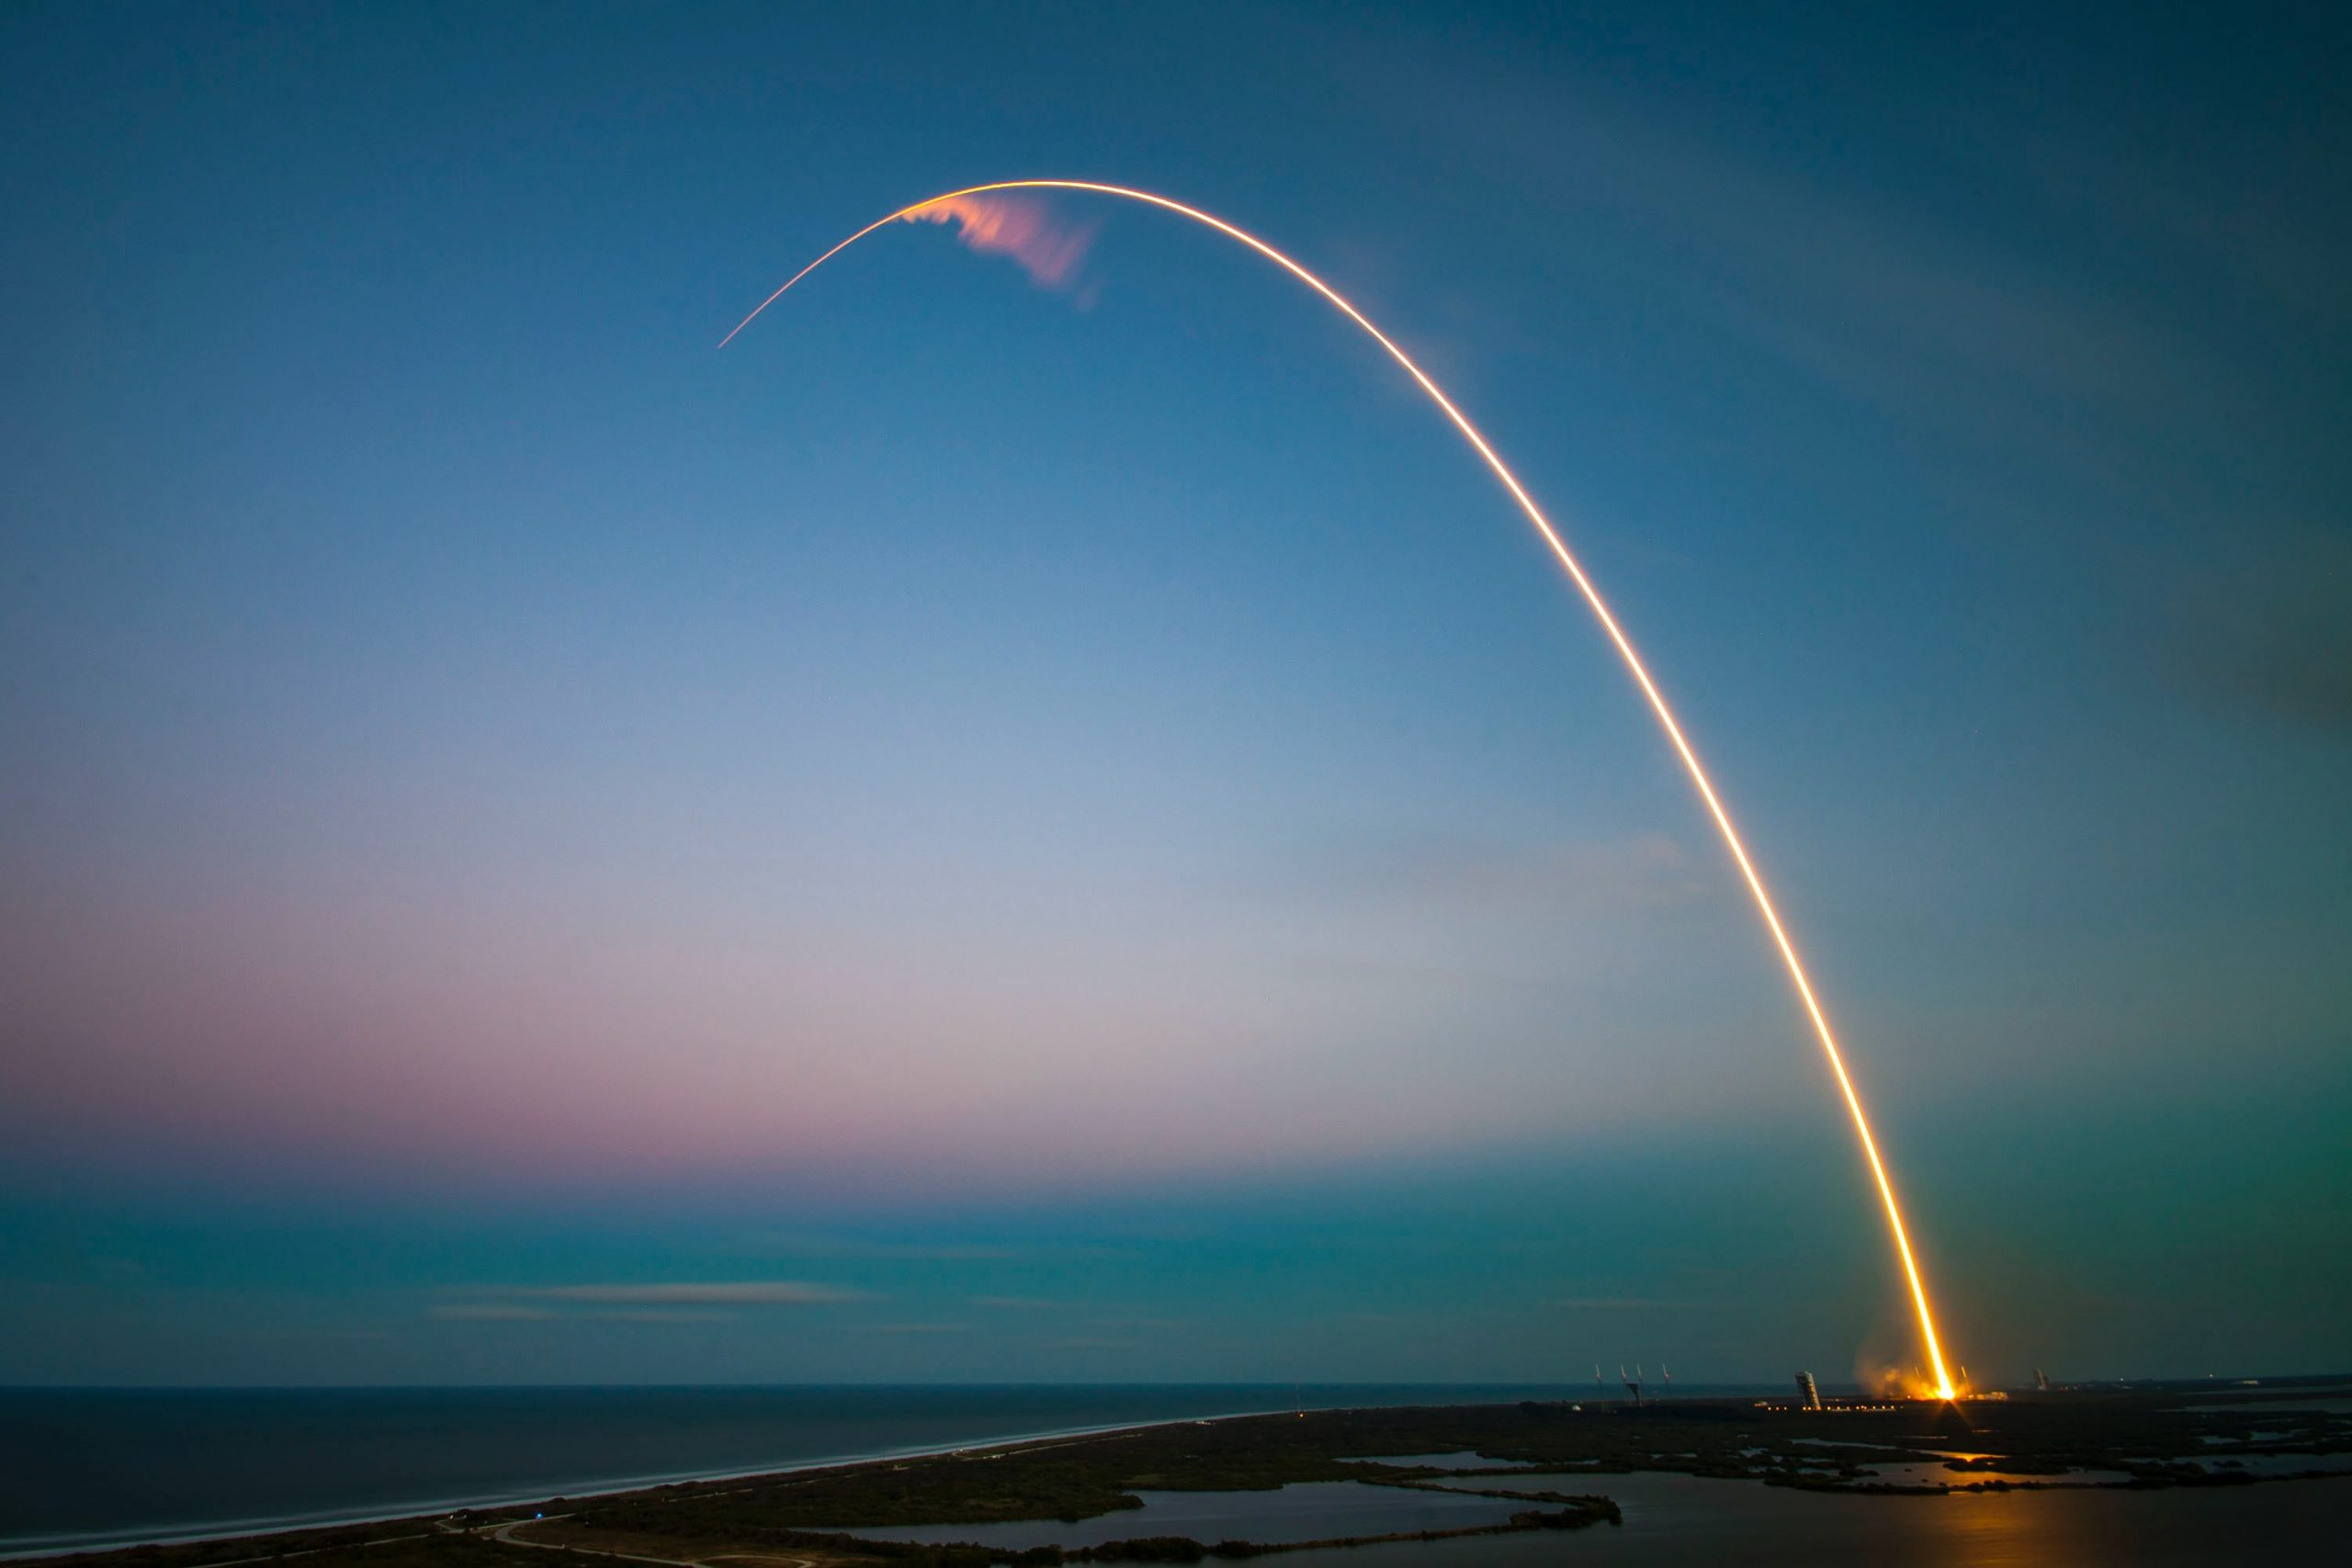 Image shows the light trail of a rocket launching in an arc across a blue sky.